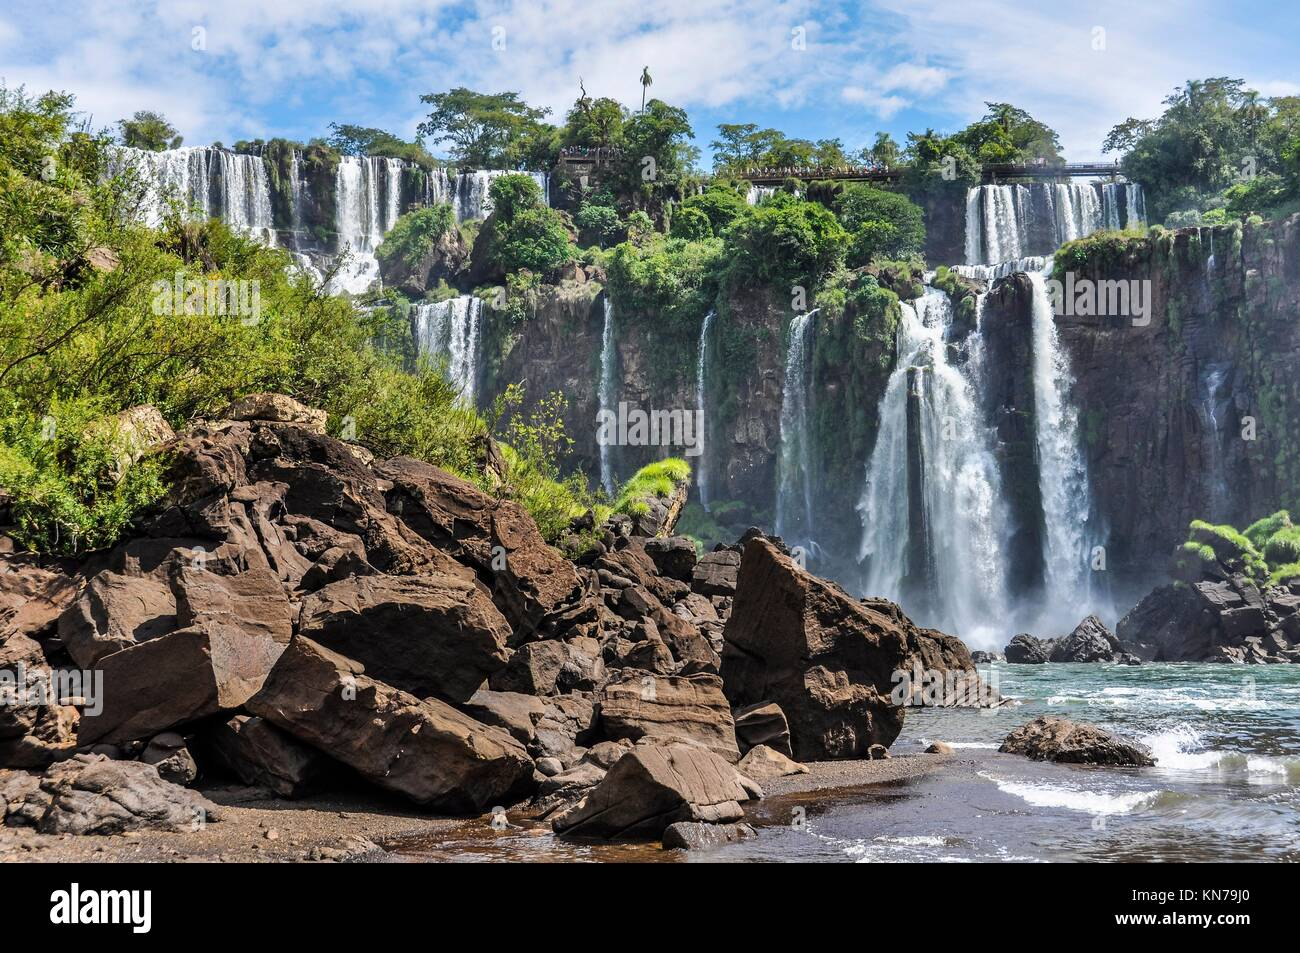 San Andres at Iguazu Falls, one of the New Seven Wonders of Nature, Argentina. - Stock Image